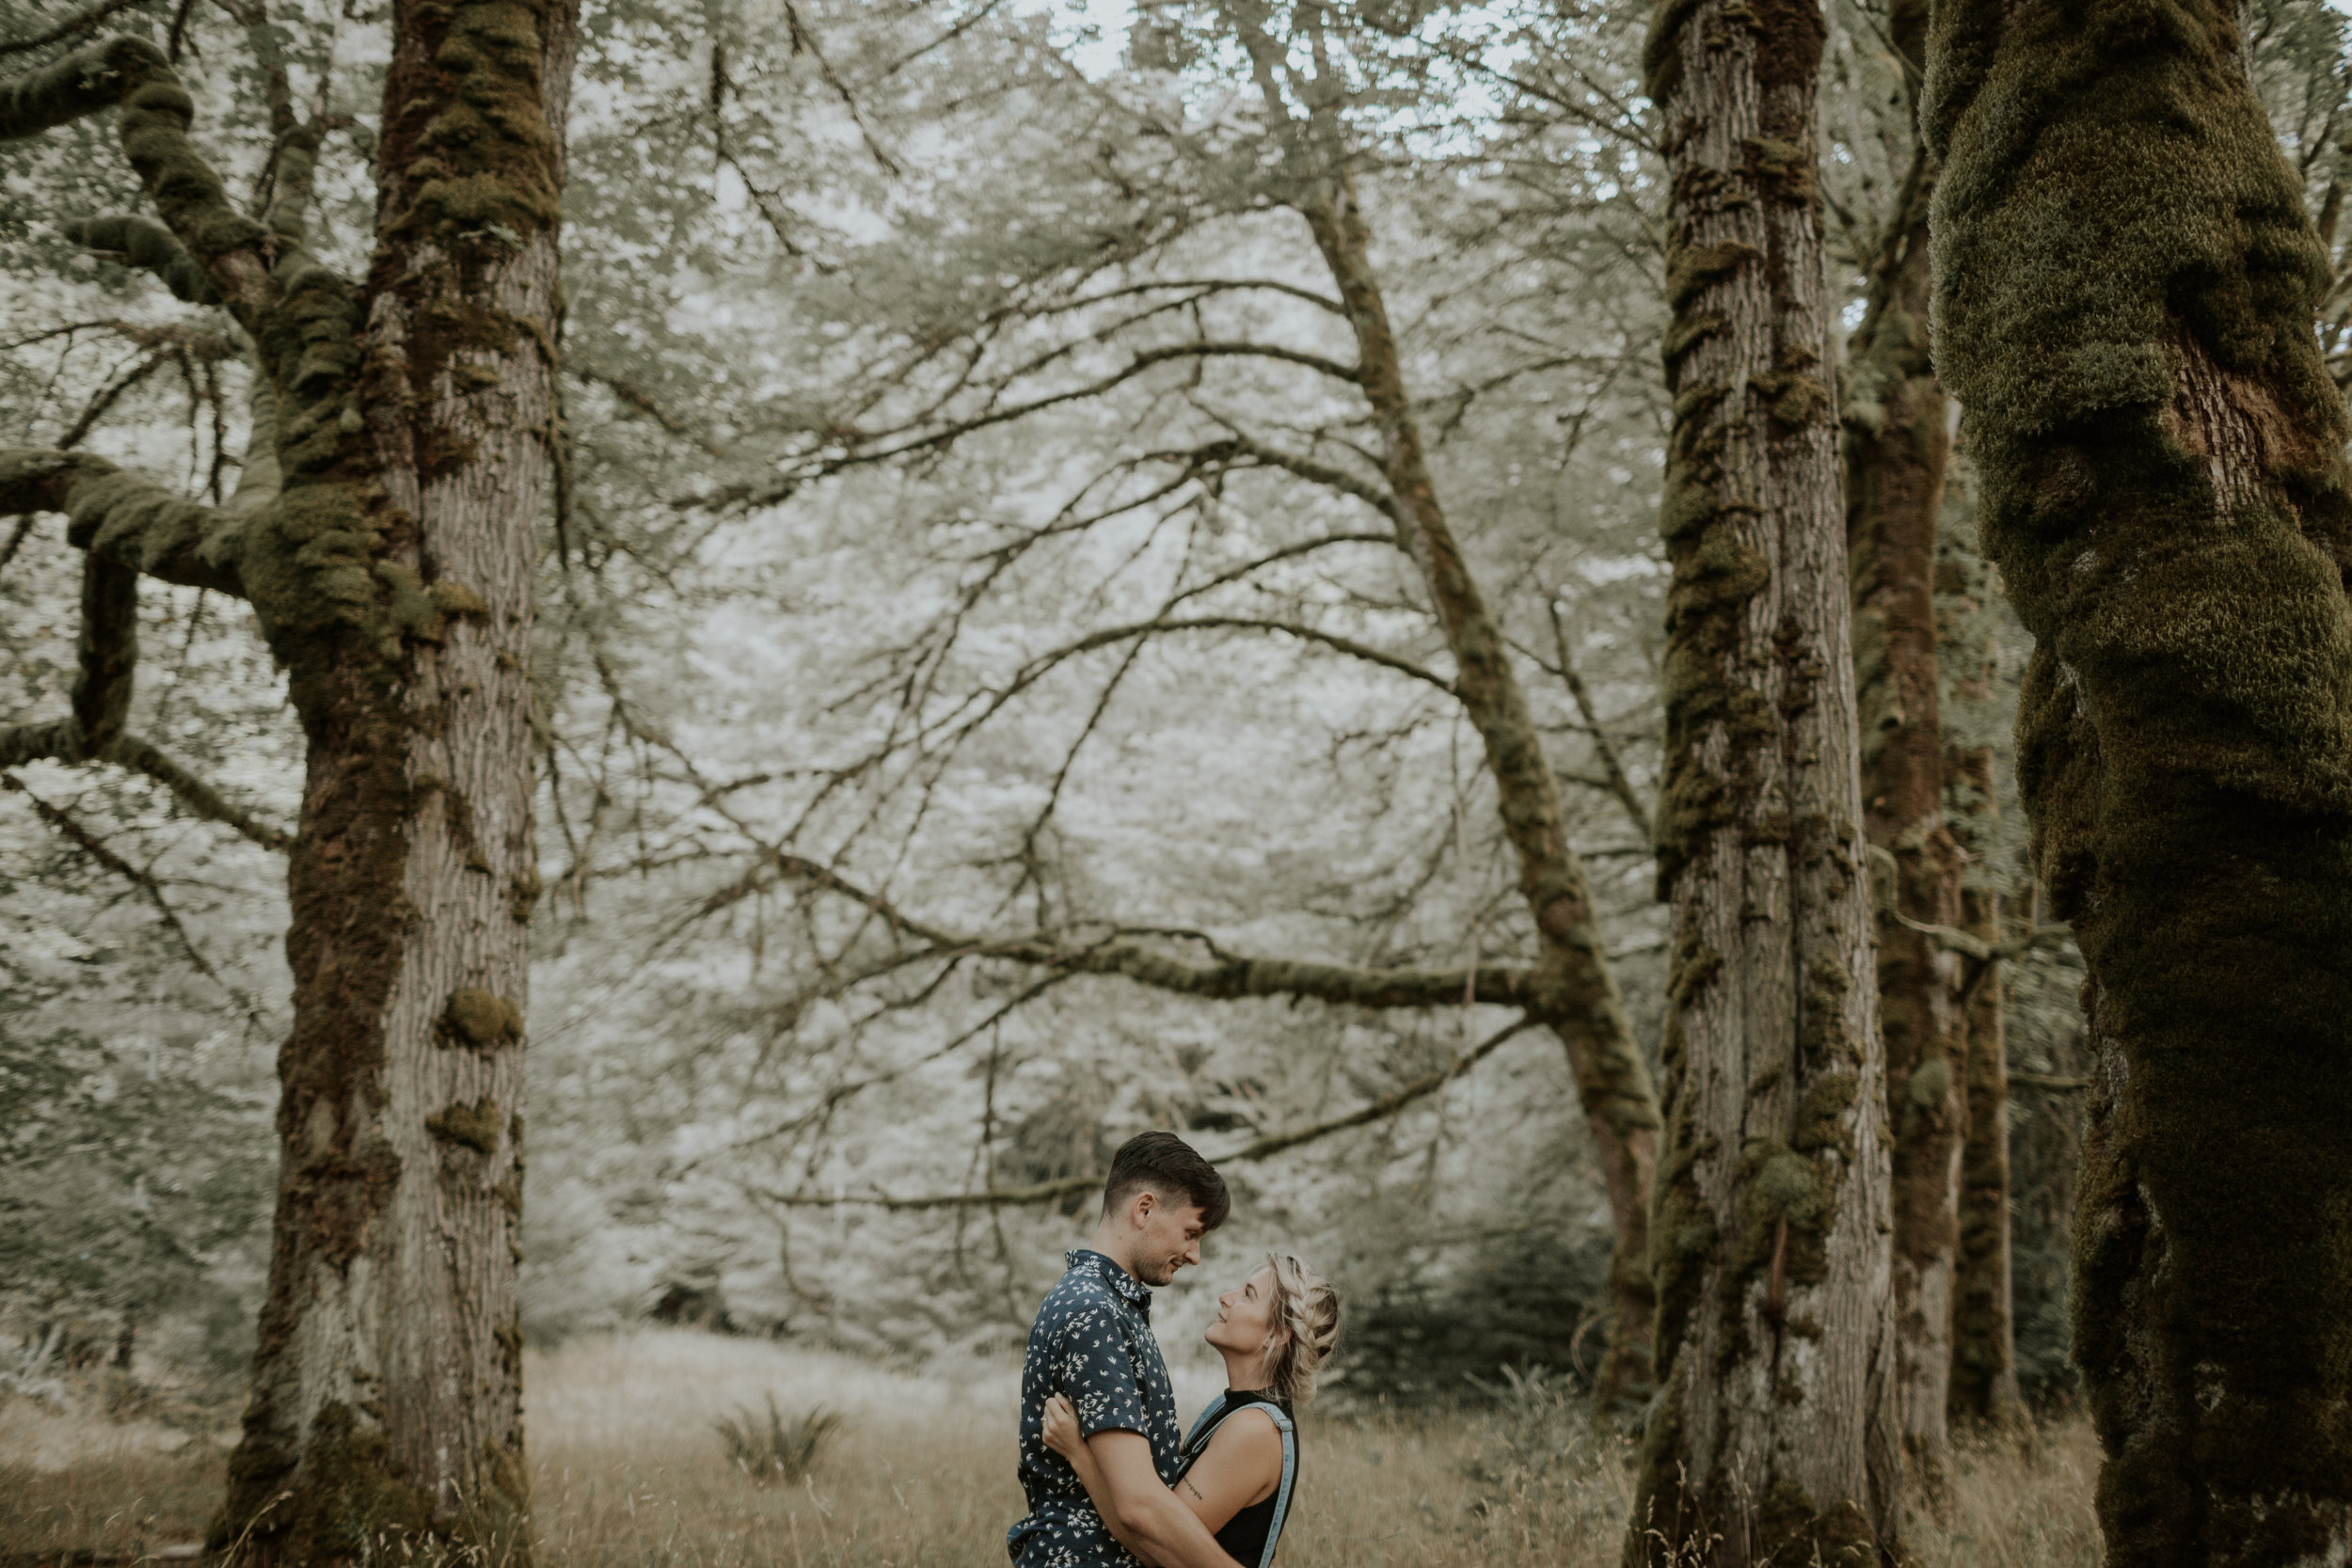 PNW-Olympic National Park-Portrait-Port-Angeles-Washington-elopement-photographer-kayla-dawn-photography-kayladawnphoto-wedding-anniversary-photoshoot-olympic-peninsula-13.jpg